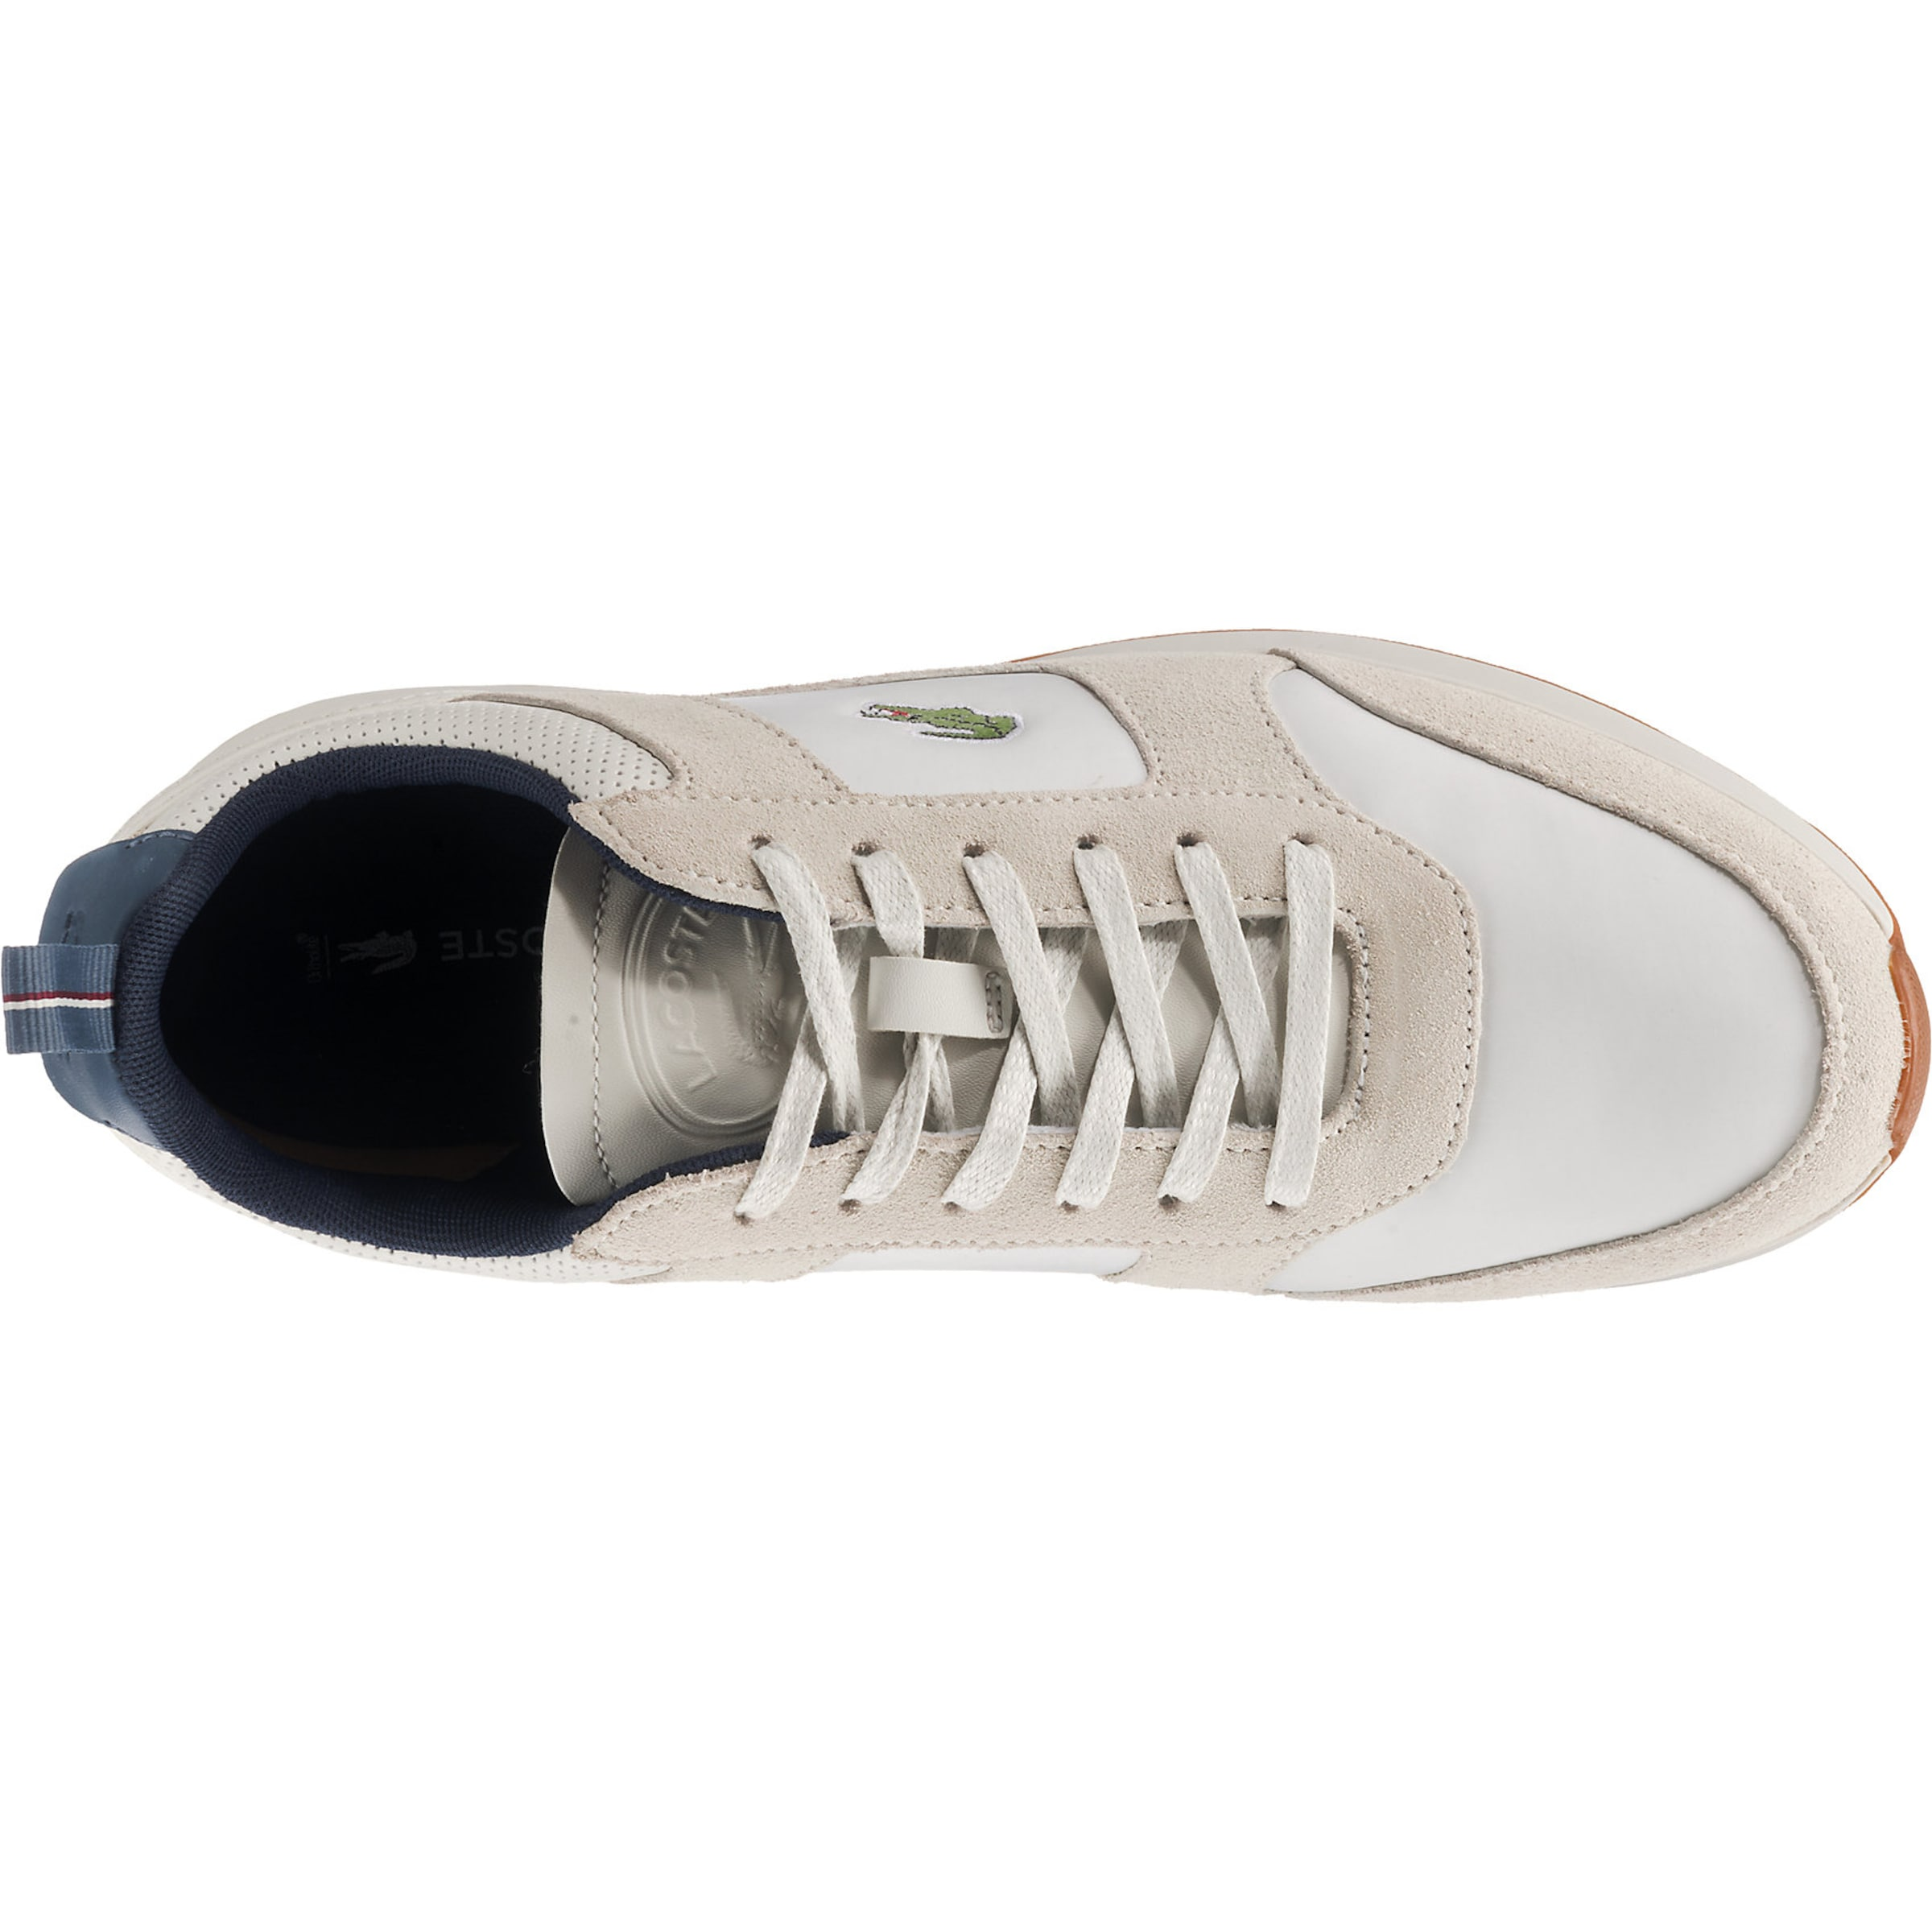 LACOSTE LACOSTE LACOSTE Turnschuhe Low 'JOGGEUR 418 Leder, sonstiges Material Lässig wild b8847f